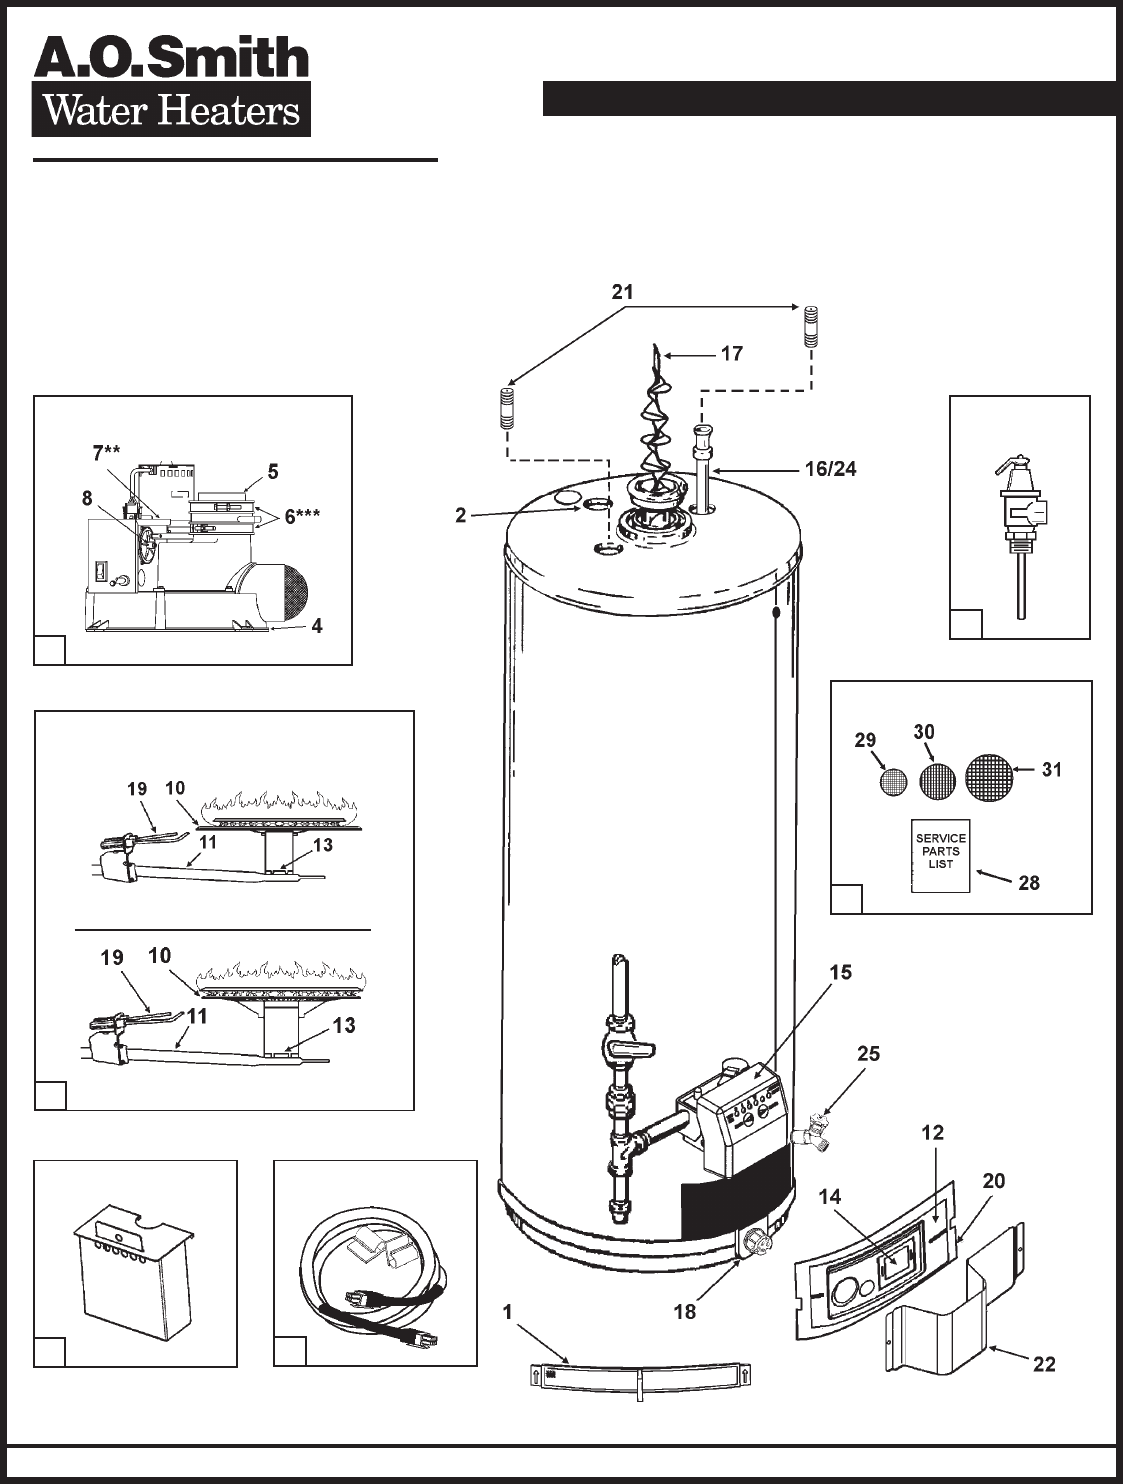 Atwood Water Heater 94026 Wiring Diagramwater 8500 Furnace 04728953 D81e 45f0 B07b Fa818132f595 Bg1 Ao Smith Diagram Diagrams Collection